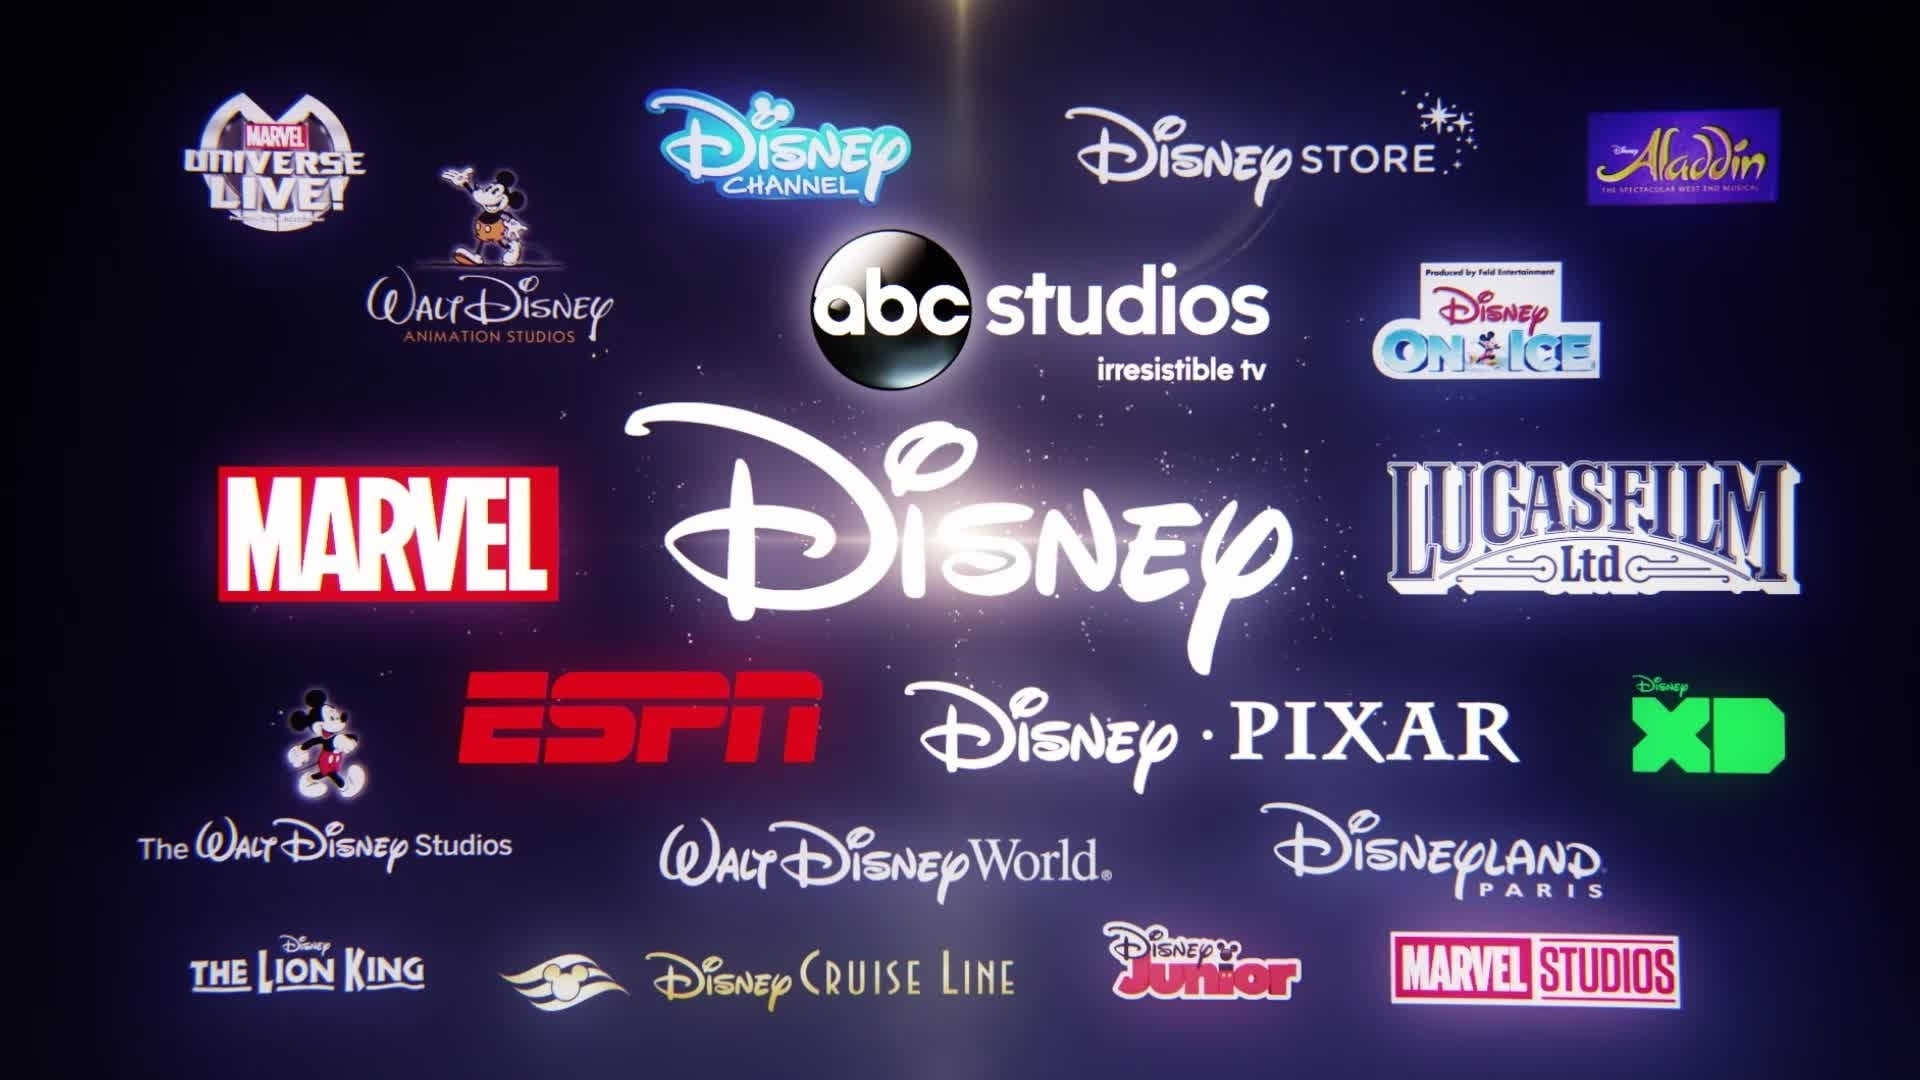 About Us - The Walt Disney Family of Companies Video (EN)